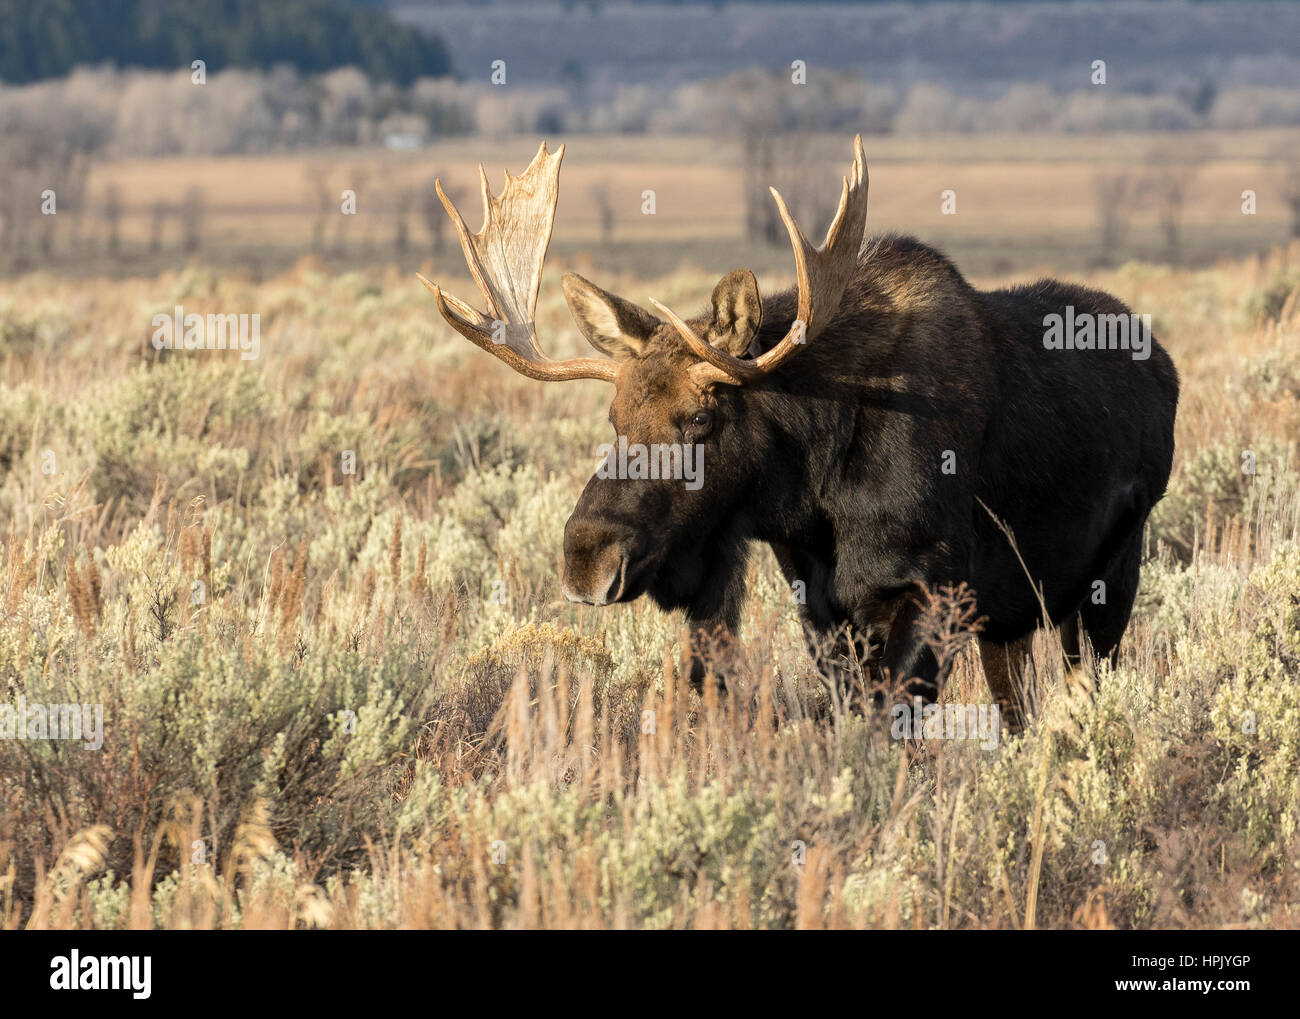 Bull Moose standing in meadow armoise en automne Banque D'Images